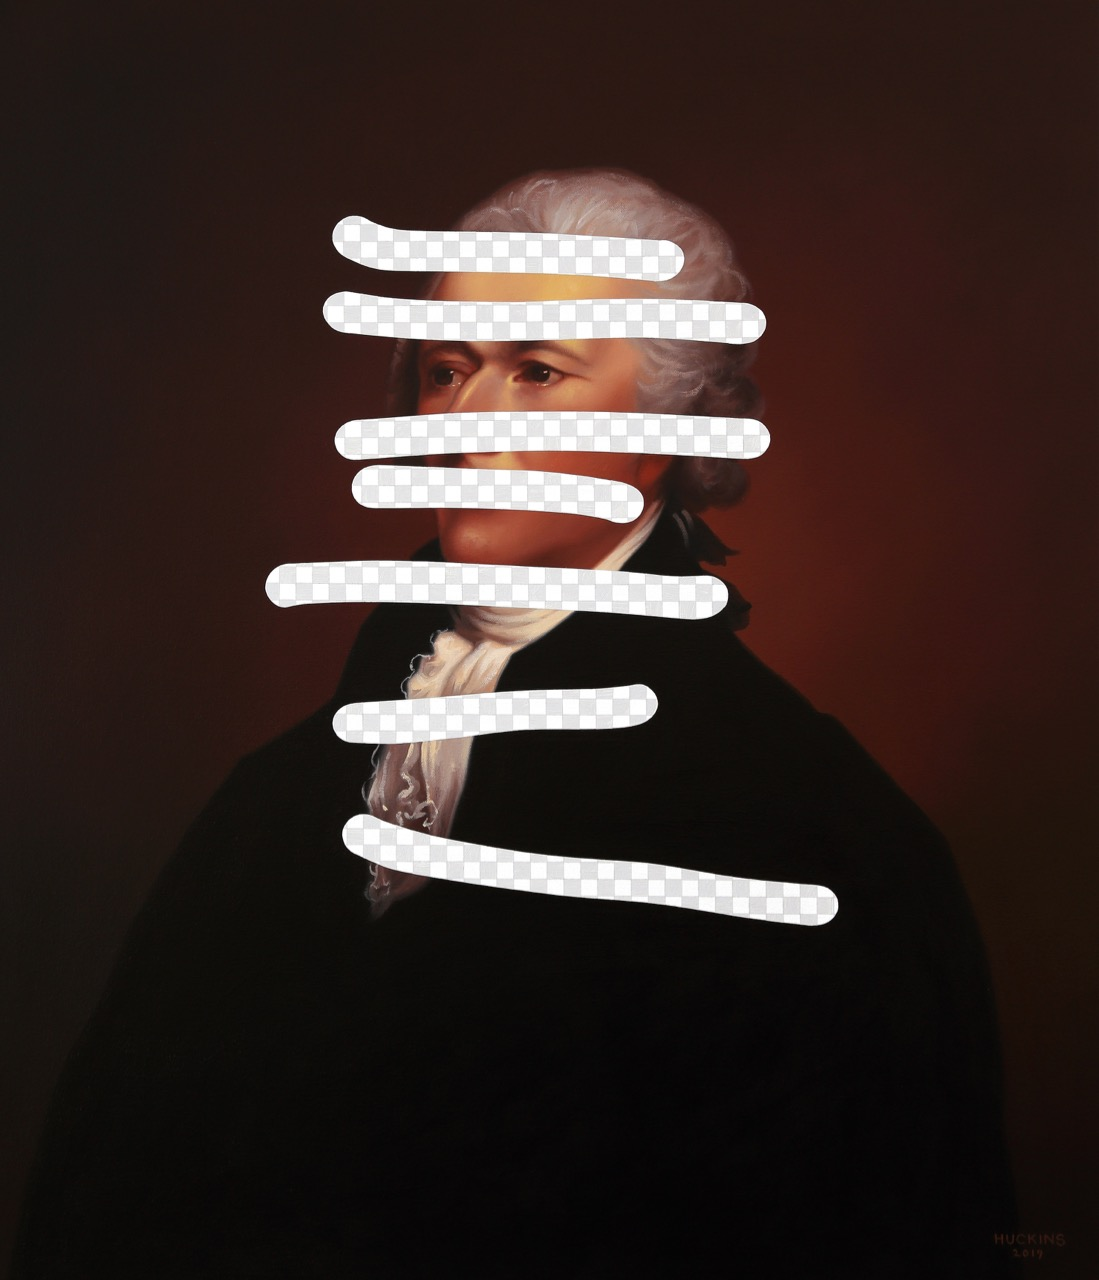 23_Redact (Alexander Hamilton, White House Art Collection Erasure No. 30) (1)